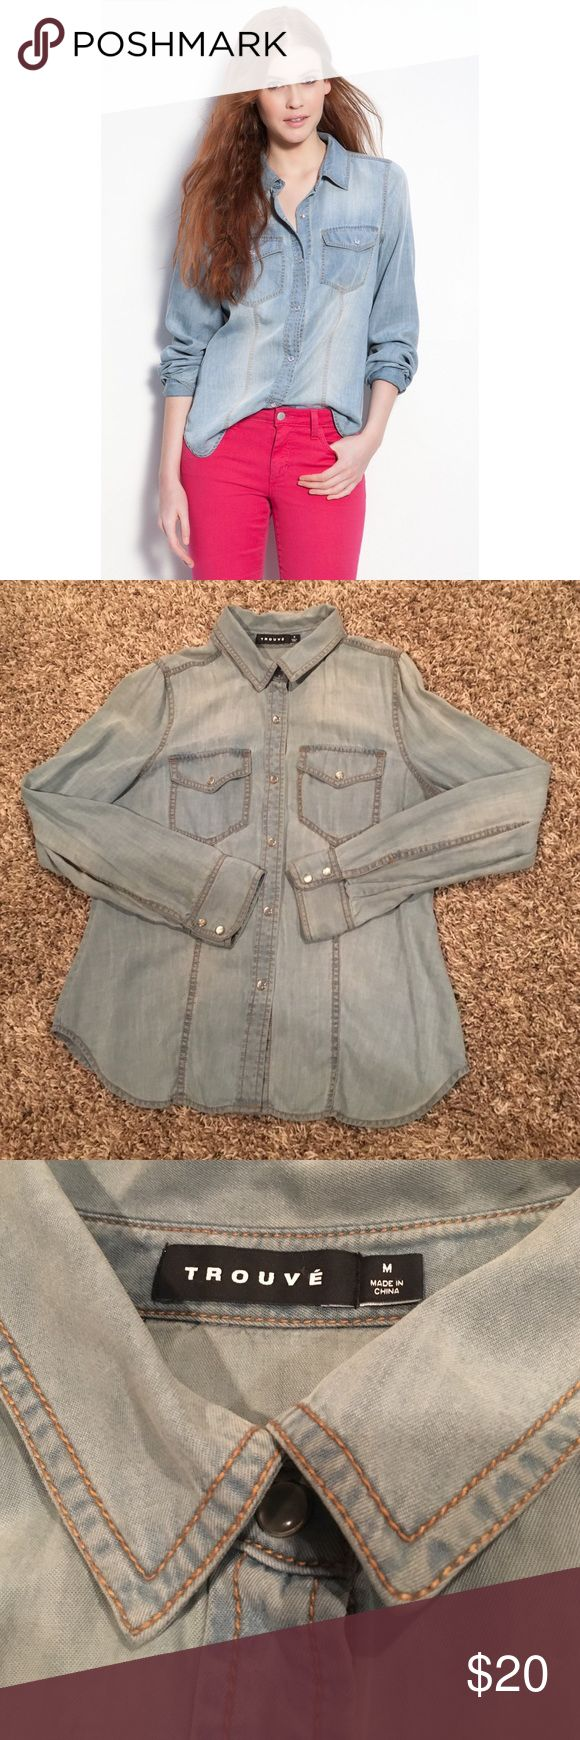 Trouve Denim Shirt Button down light chambray denim shirt. Great condition, worn once. Slim fit. Trouve Tops Button Down Shirts